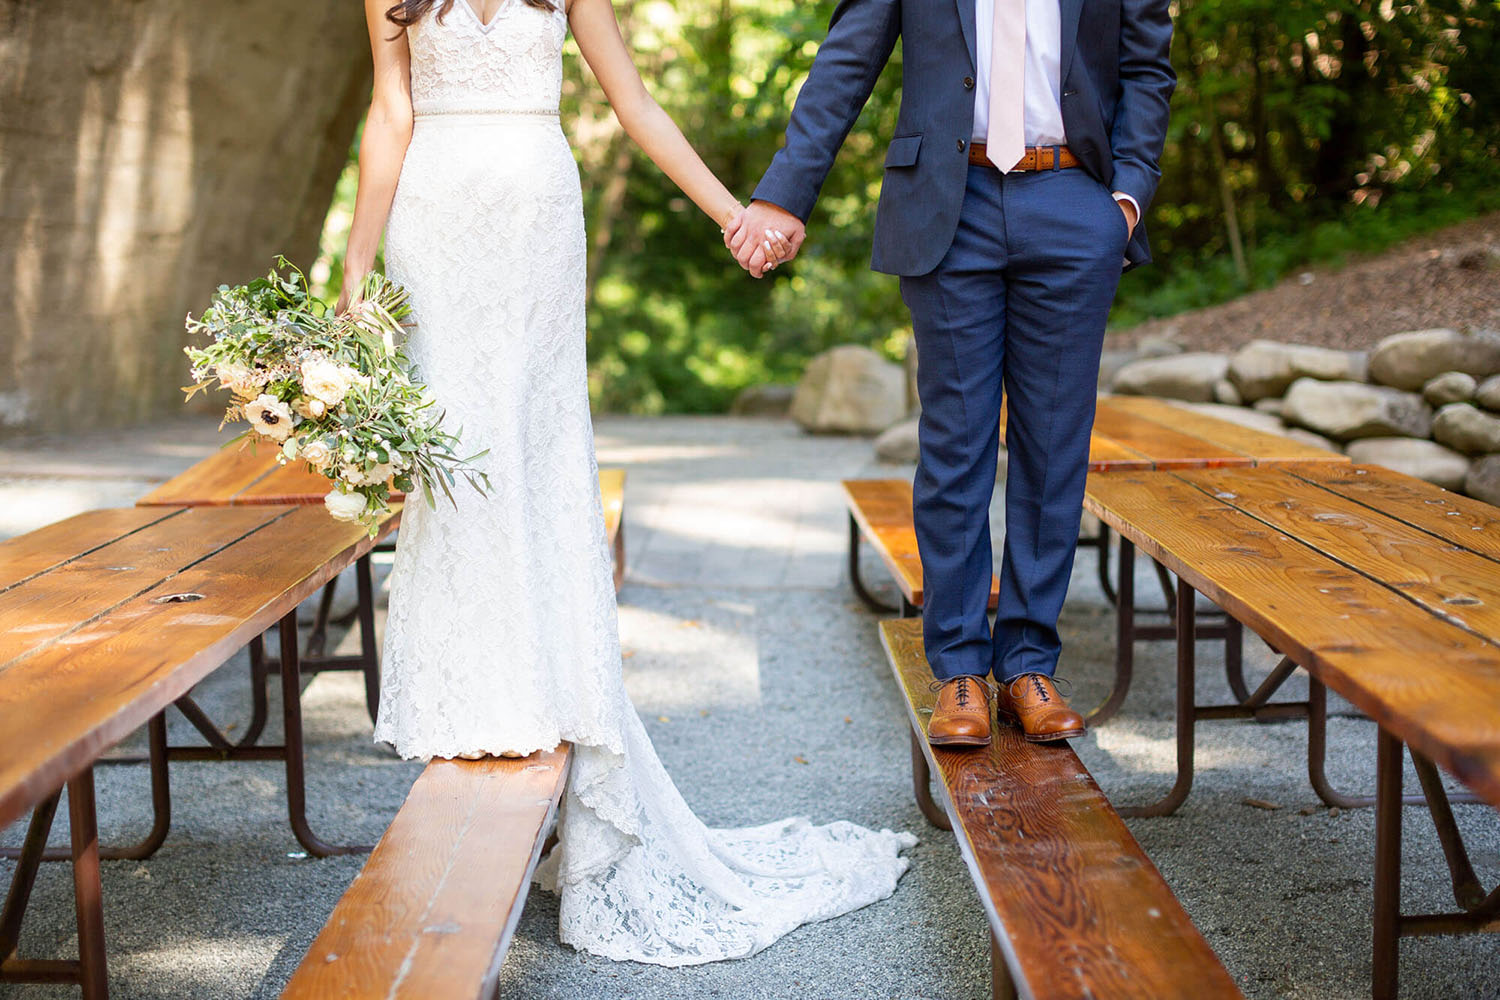 Amanda and Jake standing on benches at their Saratoga Springs wedding